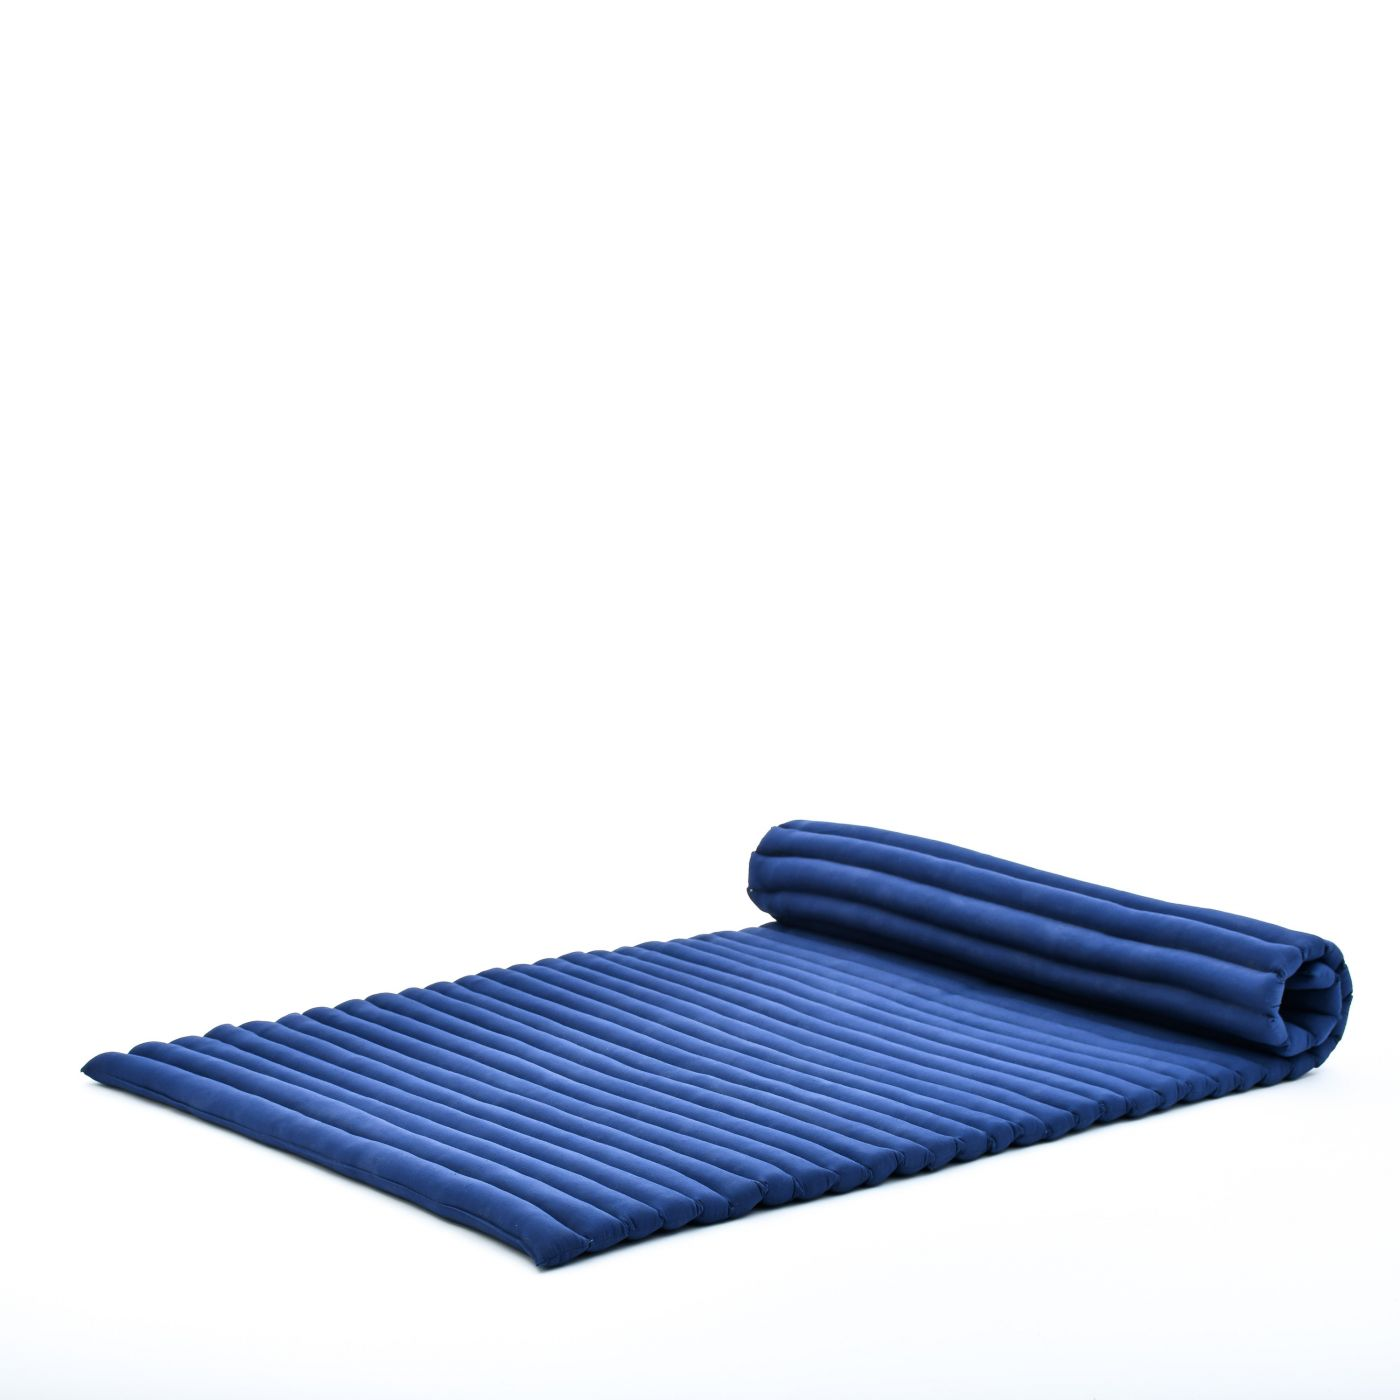 Picture of: Leewadee Roll Up Thai Mattress Twinsize Guest Bed Yoga Floor Mat Thai Massage Pad Eco Friendly Organic And Natural 79x41x2 Inches Kapok Blue